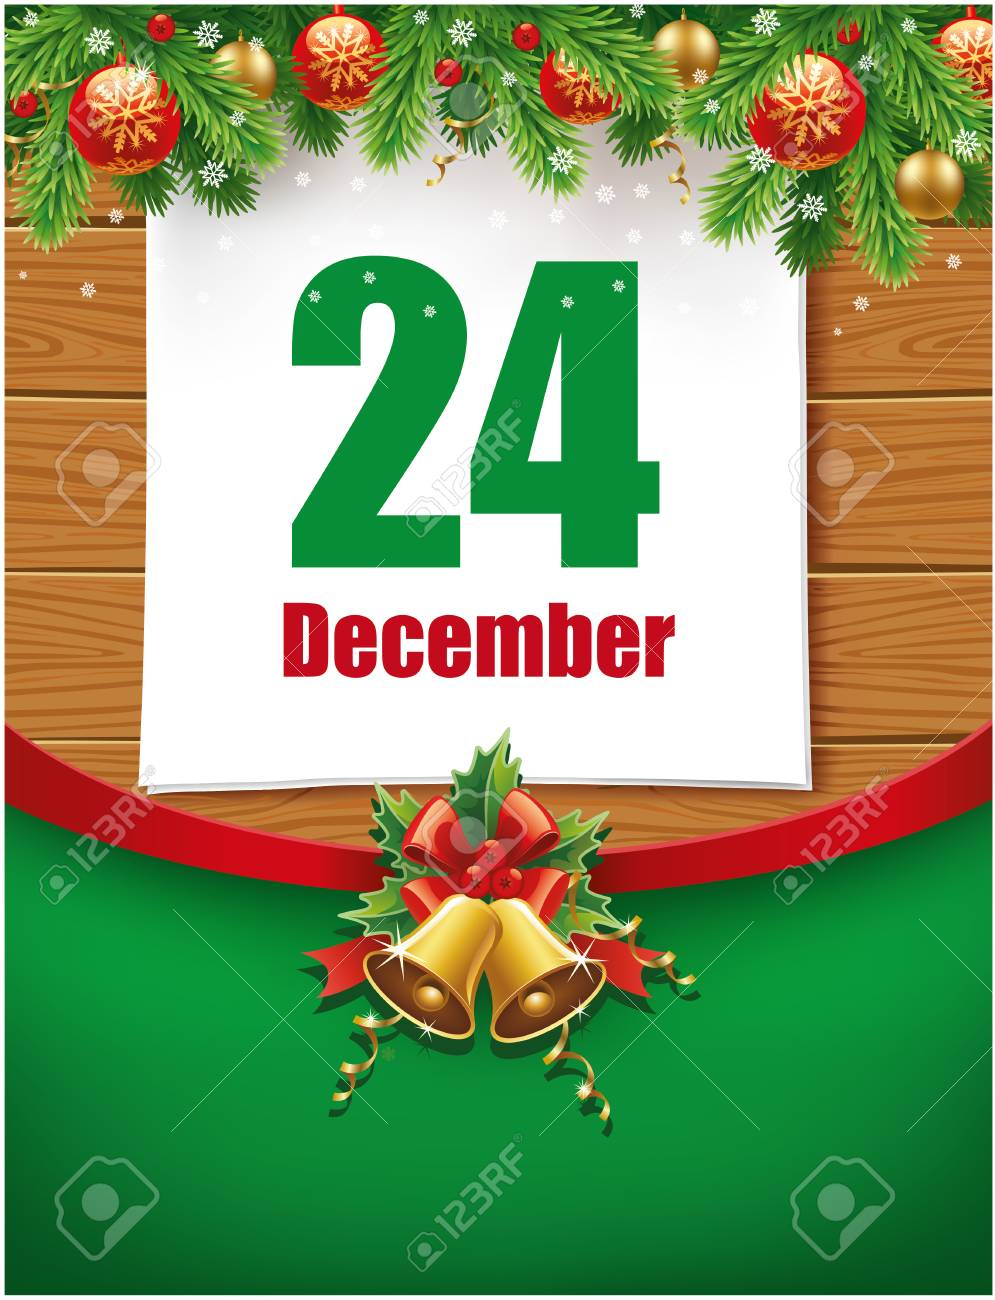 Free December Birthday Cliparts, Download Free Clip Art, Free Clip Art on  Clipart Library